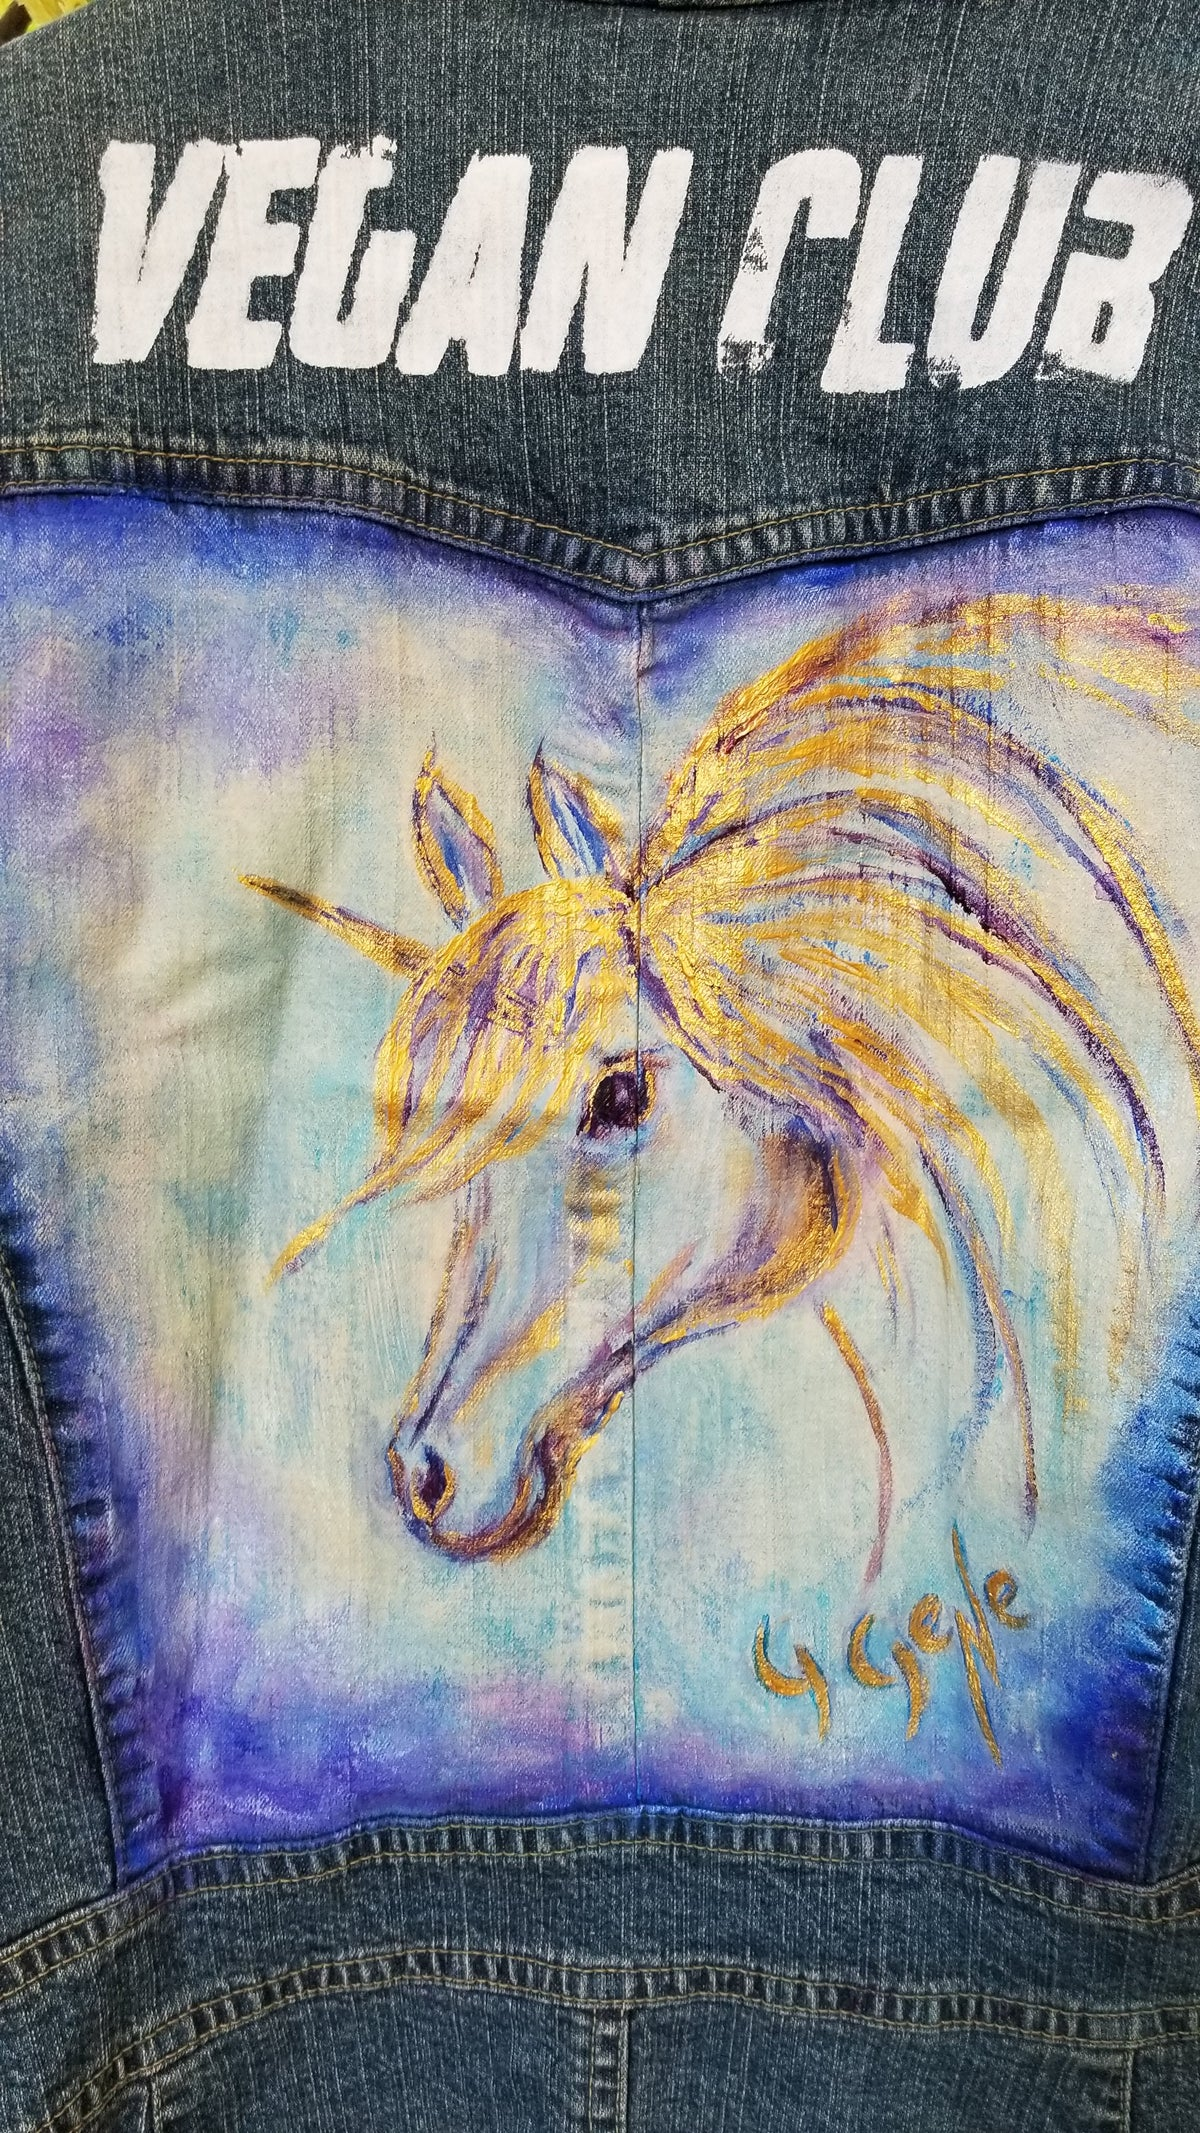 Jean Jacket featuring a Horse Unicorn Collaboration with Gloria Gene